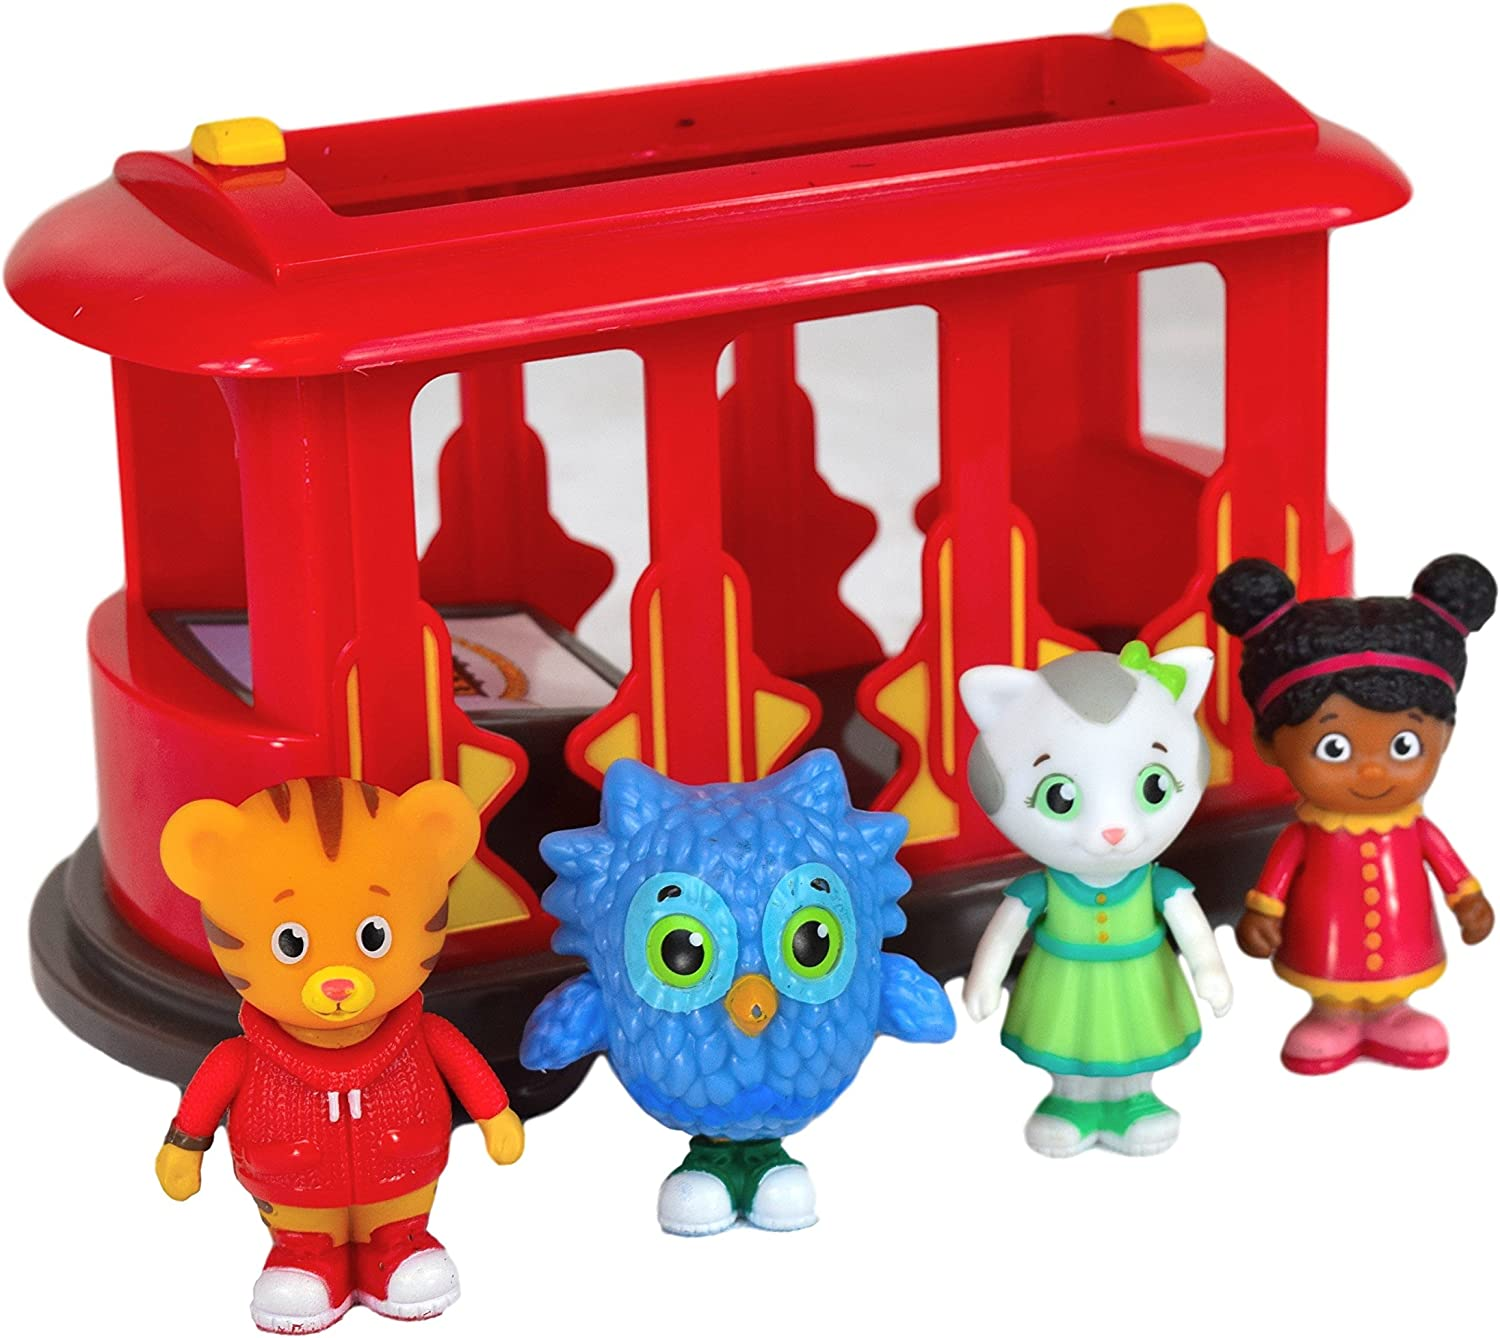 Daniel Tiger's Neighborhood Trolley & Play Set